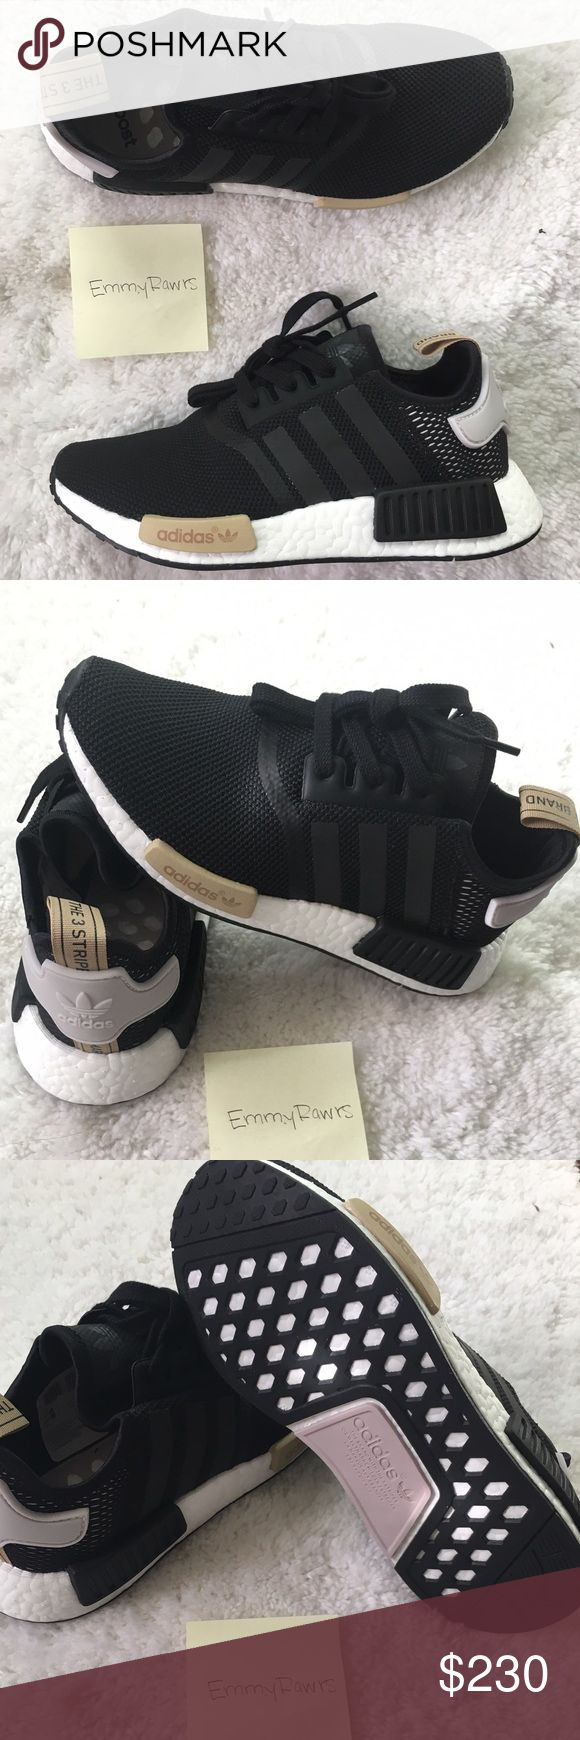 $200 • New Adidas NMD R1 Black $200 via Merc, vinted or (P). New Women Adidas NMD. Featherweight sneakers with the adidas boost cushioning. Upper is made of suede and neoprene which makes these. Also have EVA foam plugs which provides more comfort for the underfoot. Have the classic 3 stripes. Striped are reflective! Will come with original NMD box. Size 6, 7, 7.5 in women's are available. #adidas #NMD #boost #women #yeezy #superstar #stansmith #salmon #cream Adidas Shoes Sneakers